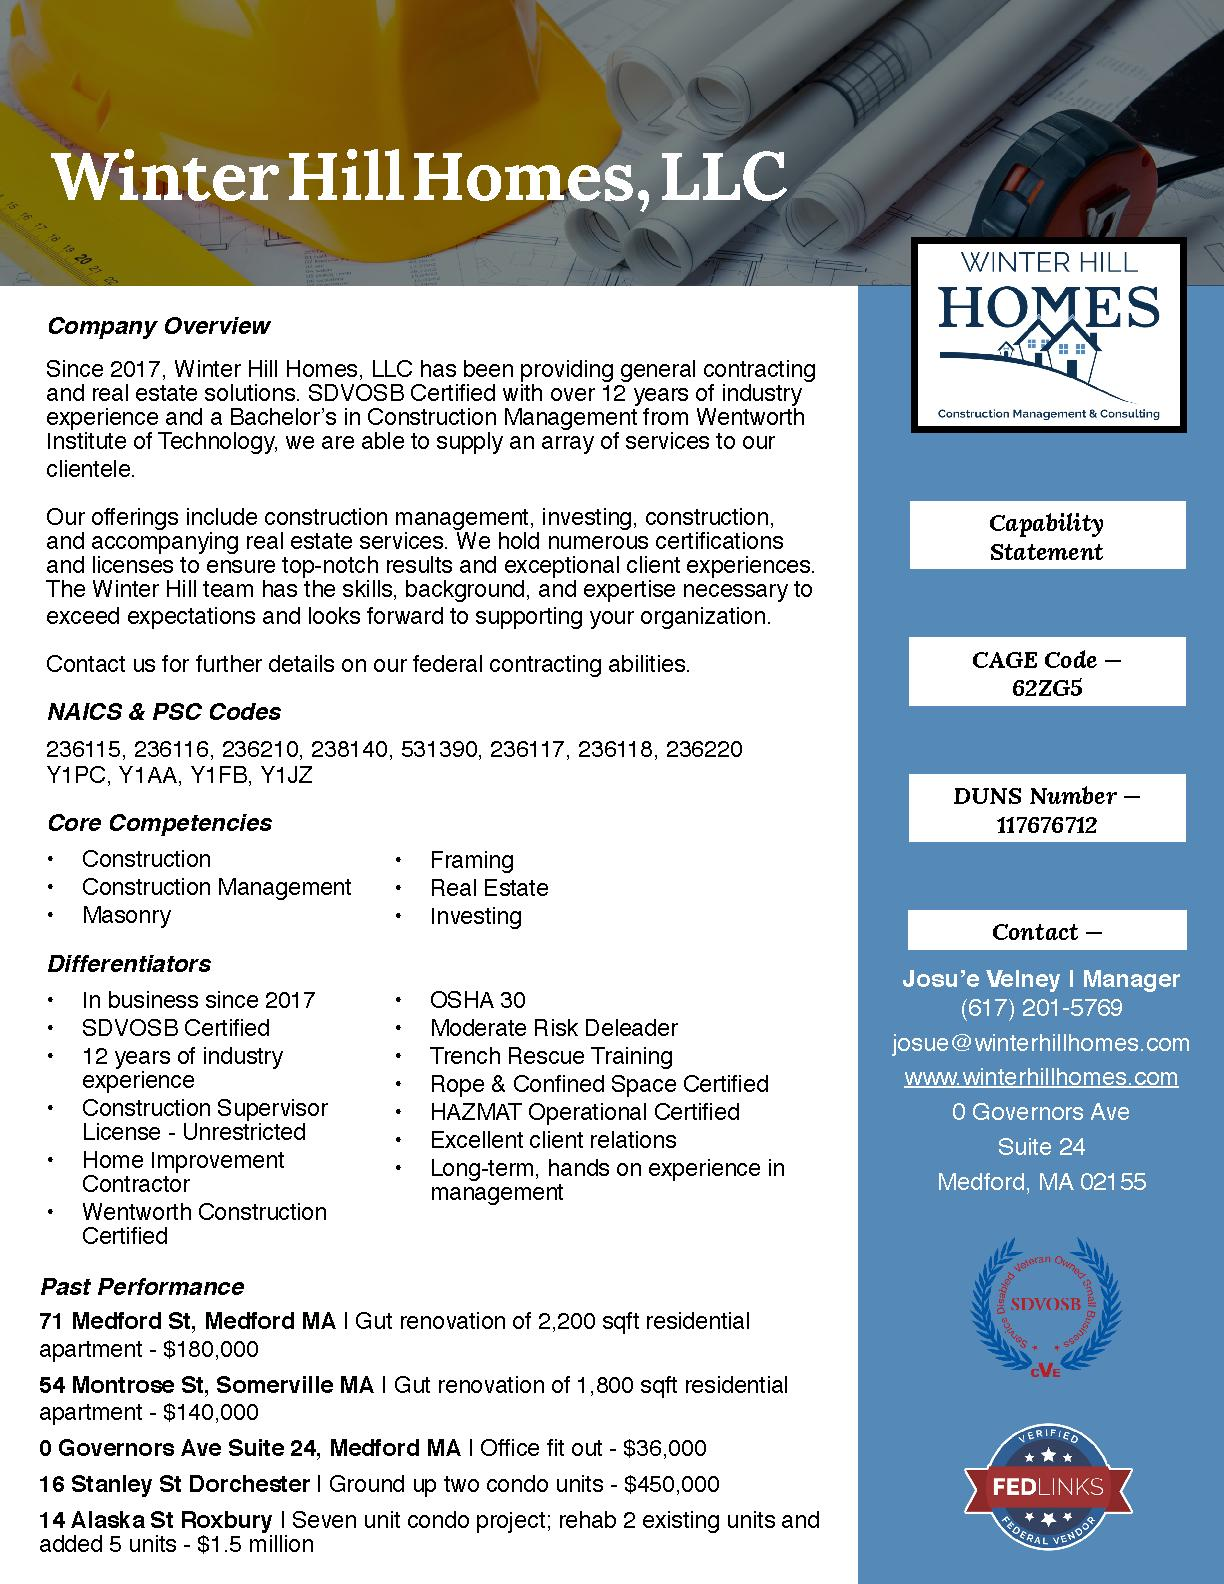 Winter hill homes capability statement